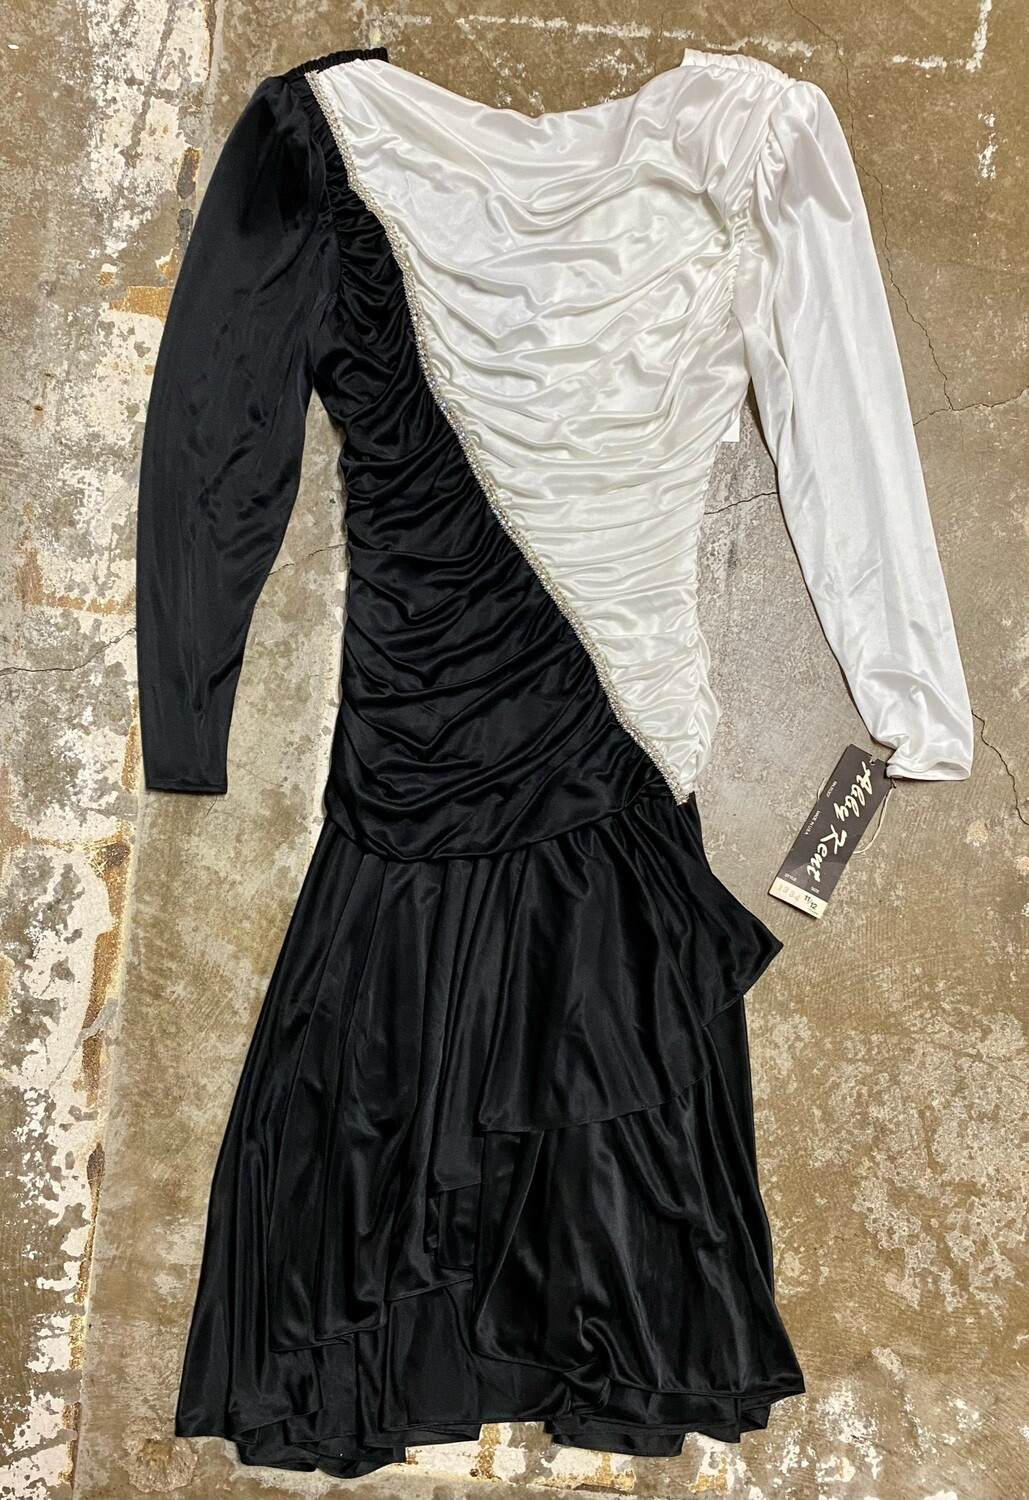 Abby Kent, Black and White 1980s Formal Dress